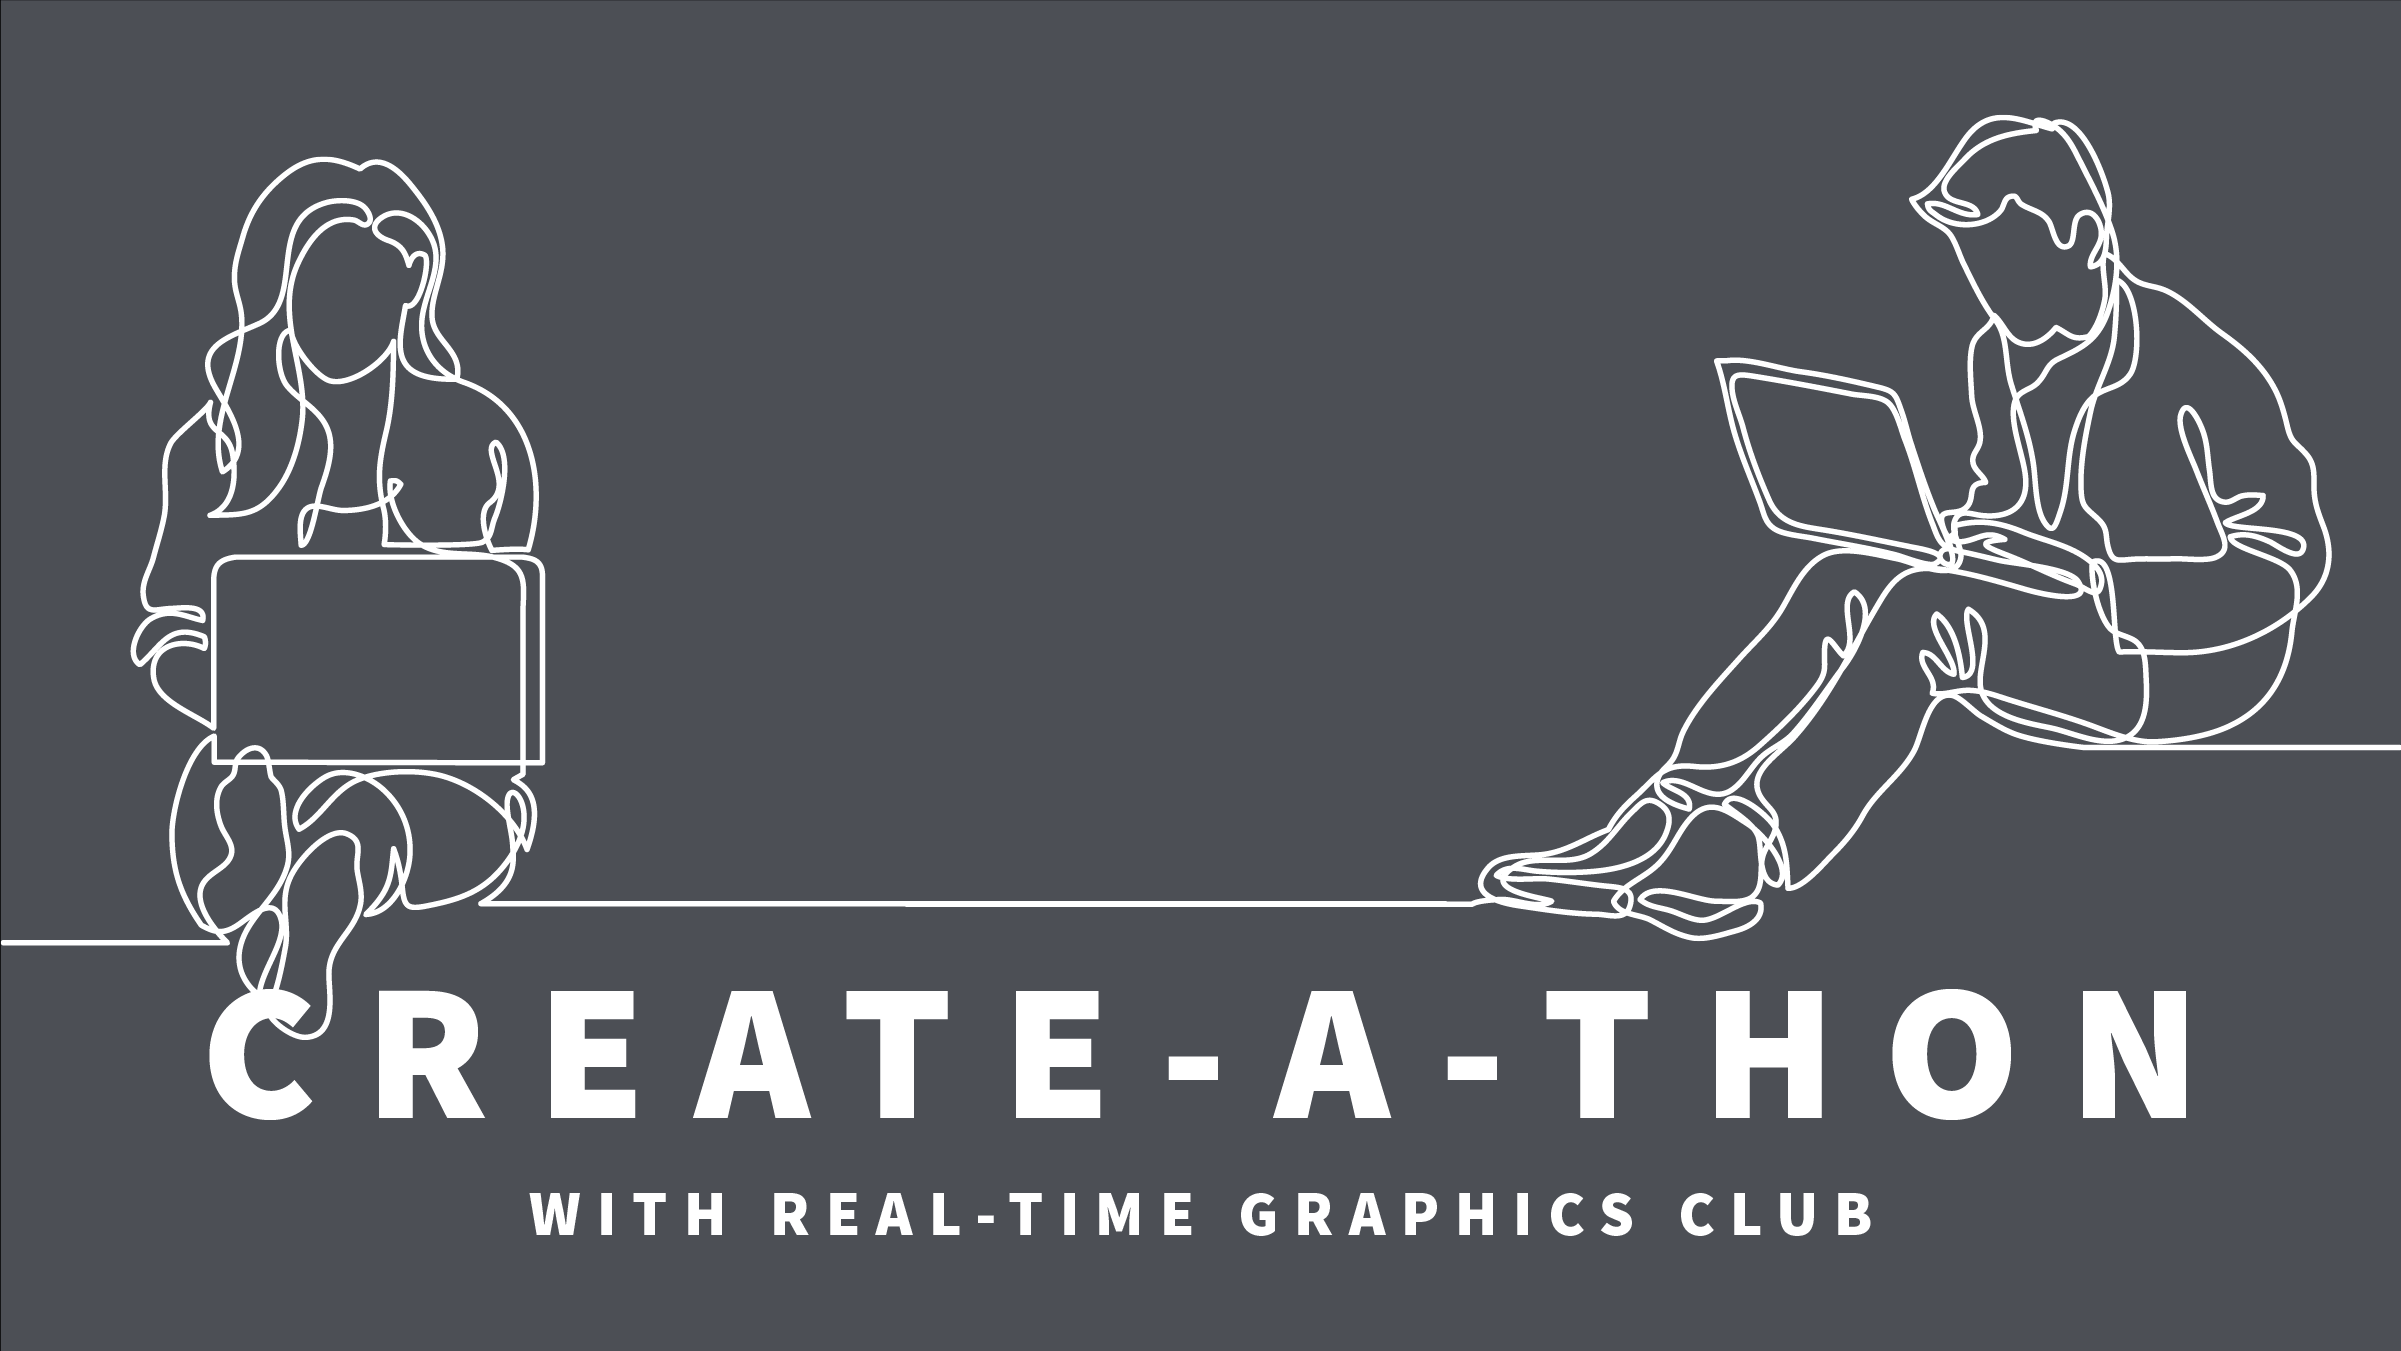 Create-a-Thon with RTC-31-31-31.png